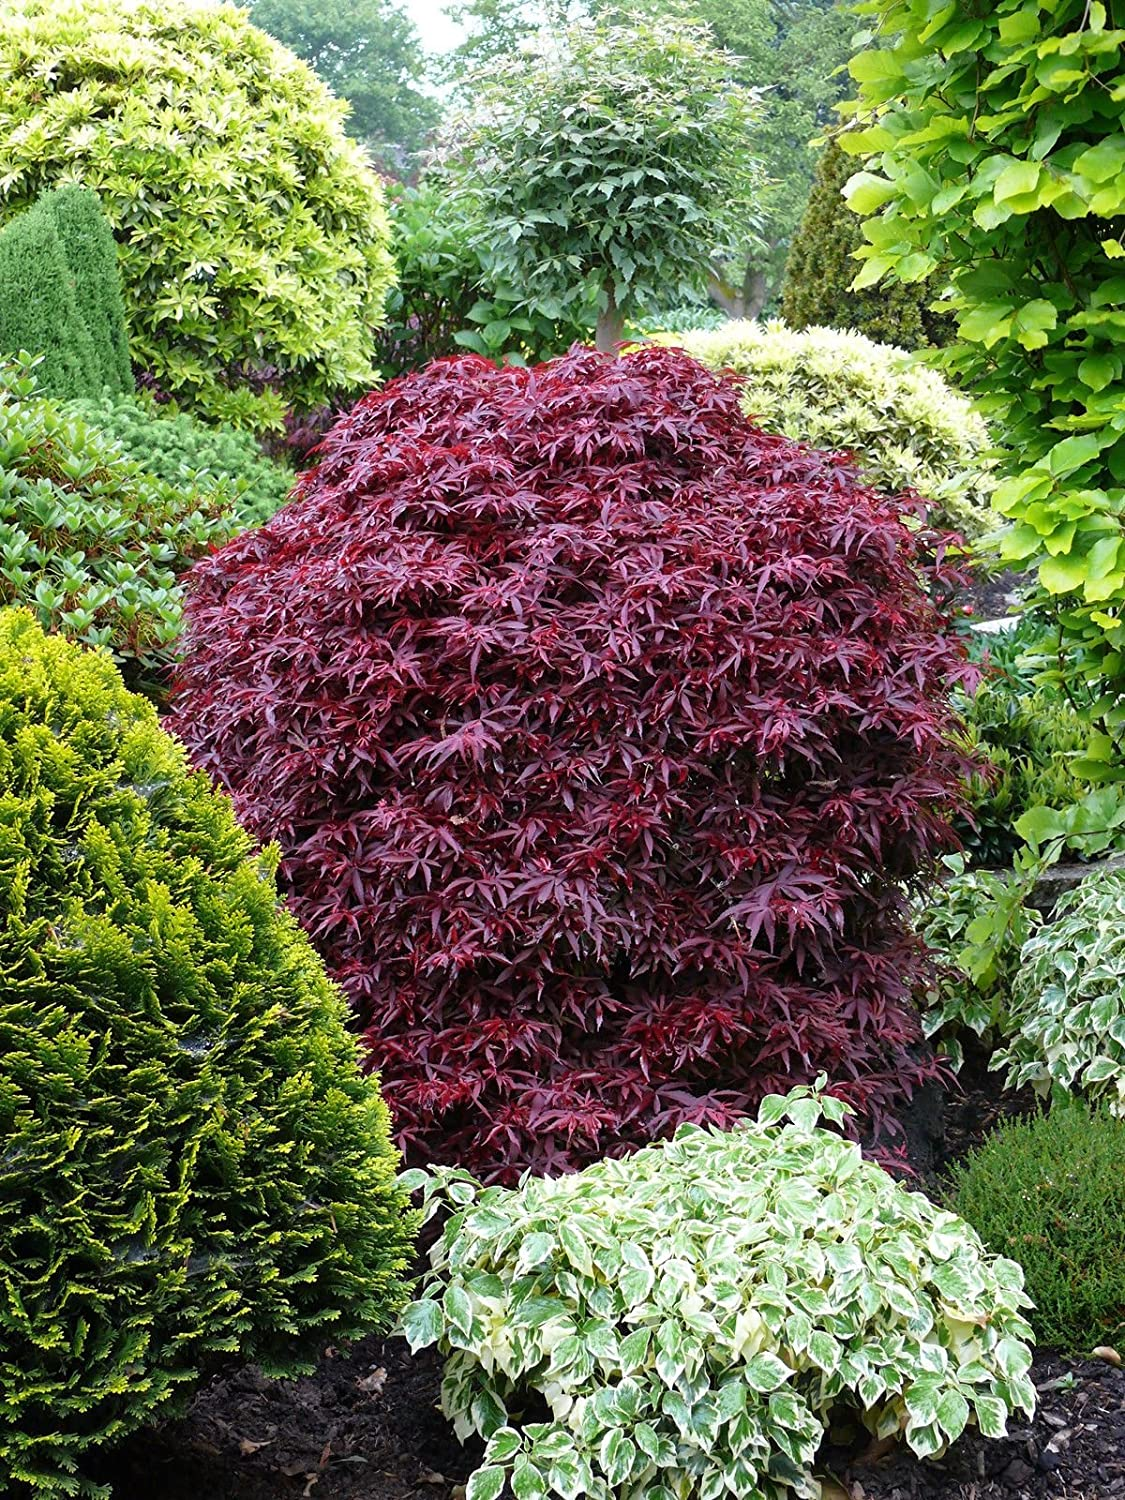 Acer Palmatum Shaina Japanese Maple Tree 4-5ft Supplied in a 7.5 Litre Pot Direct Plants